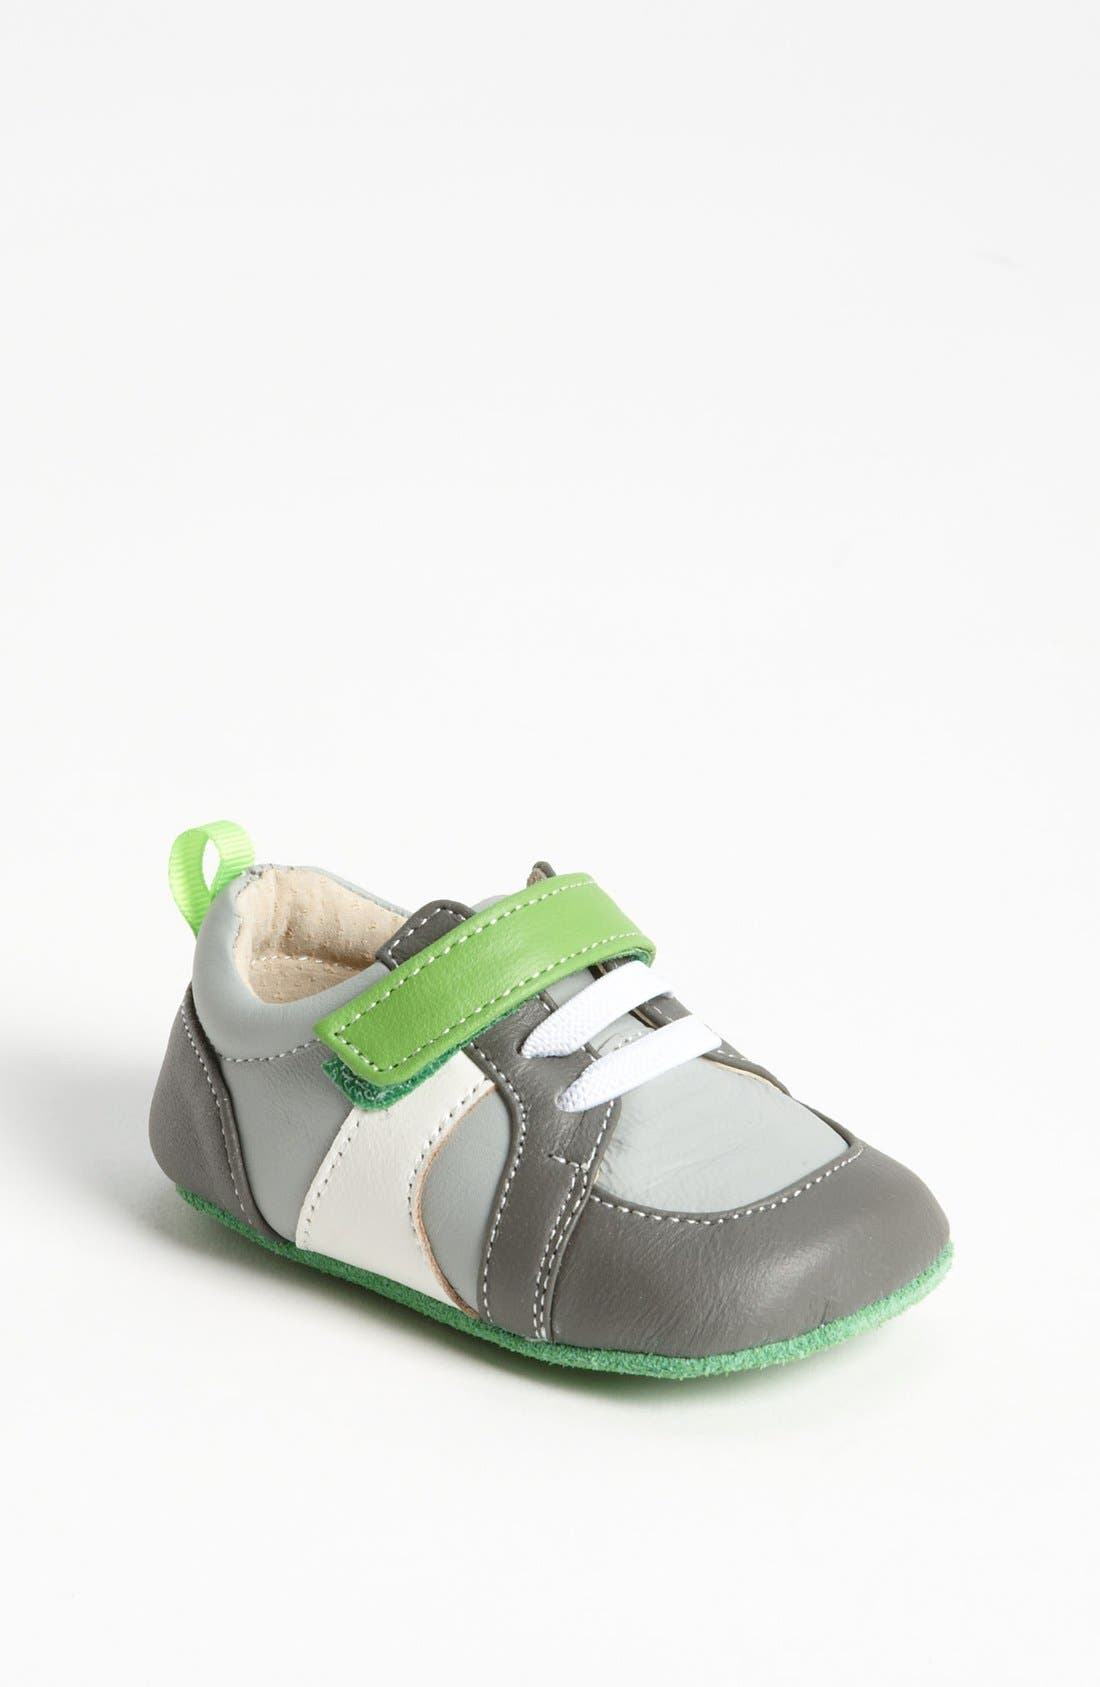 Alternate Image 1 Selected - See Kai Run 'Tyler' Shoe (Baby & Walker)